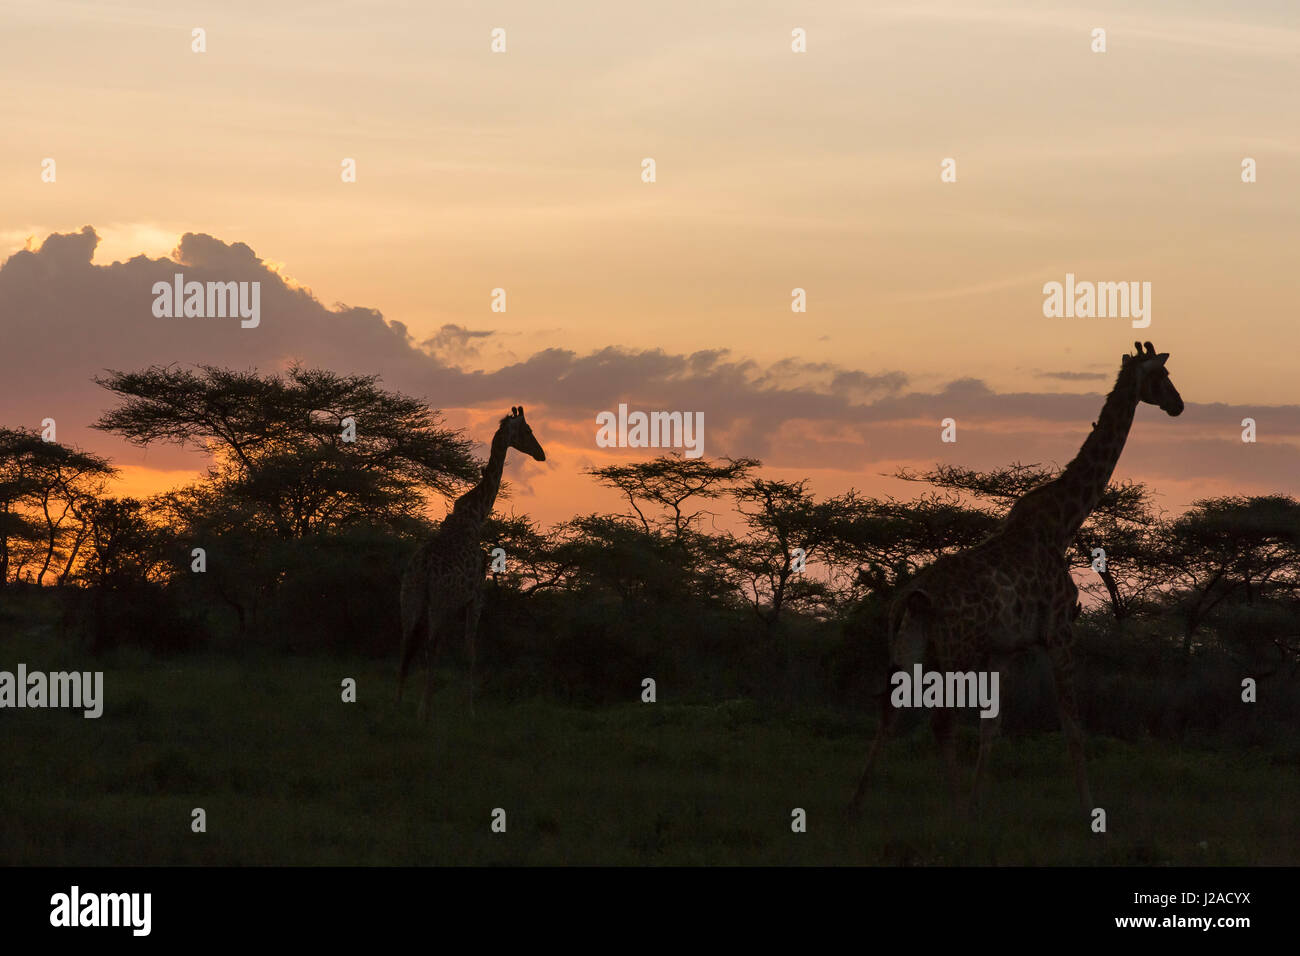 Two silhouetted Masai giraffes walk by darkened jungle in evening after sunset, clouds formations, yellow to orange - Stock Image